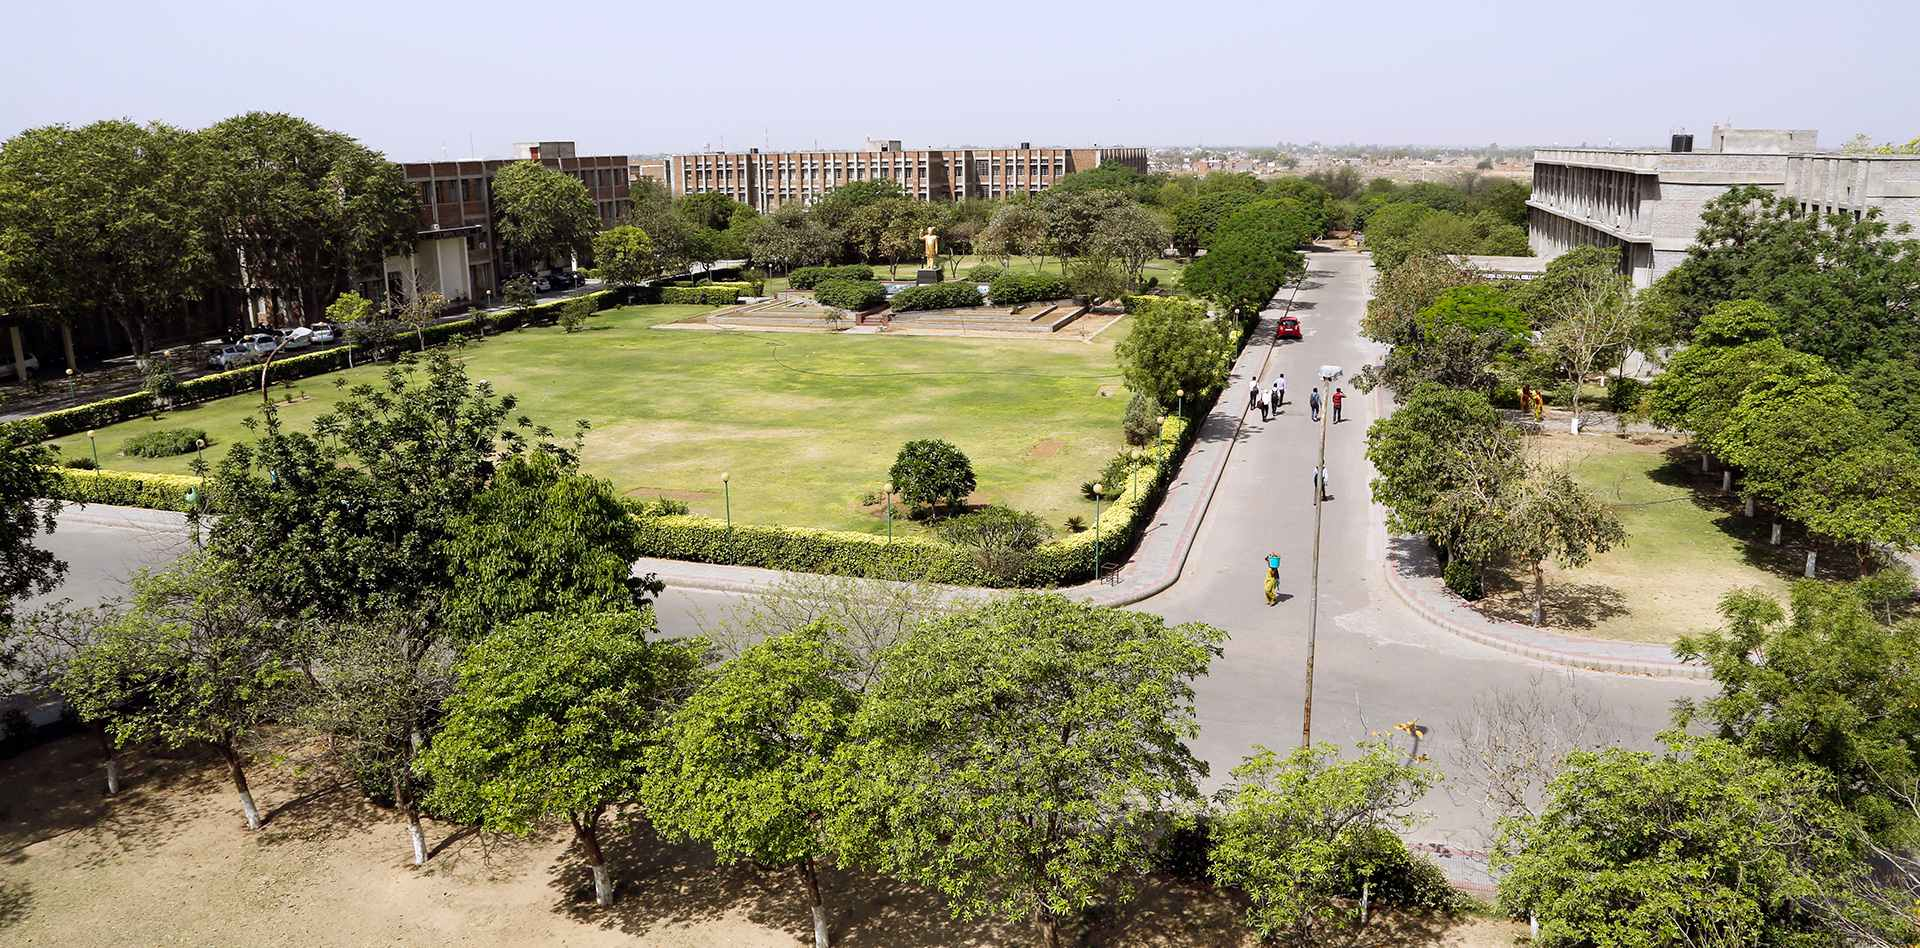 jcd-dental-college-campus